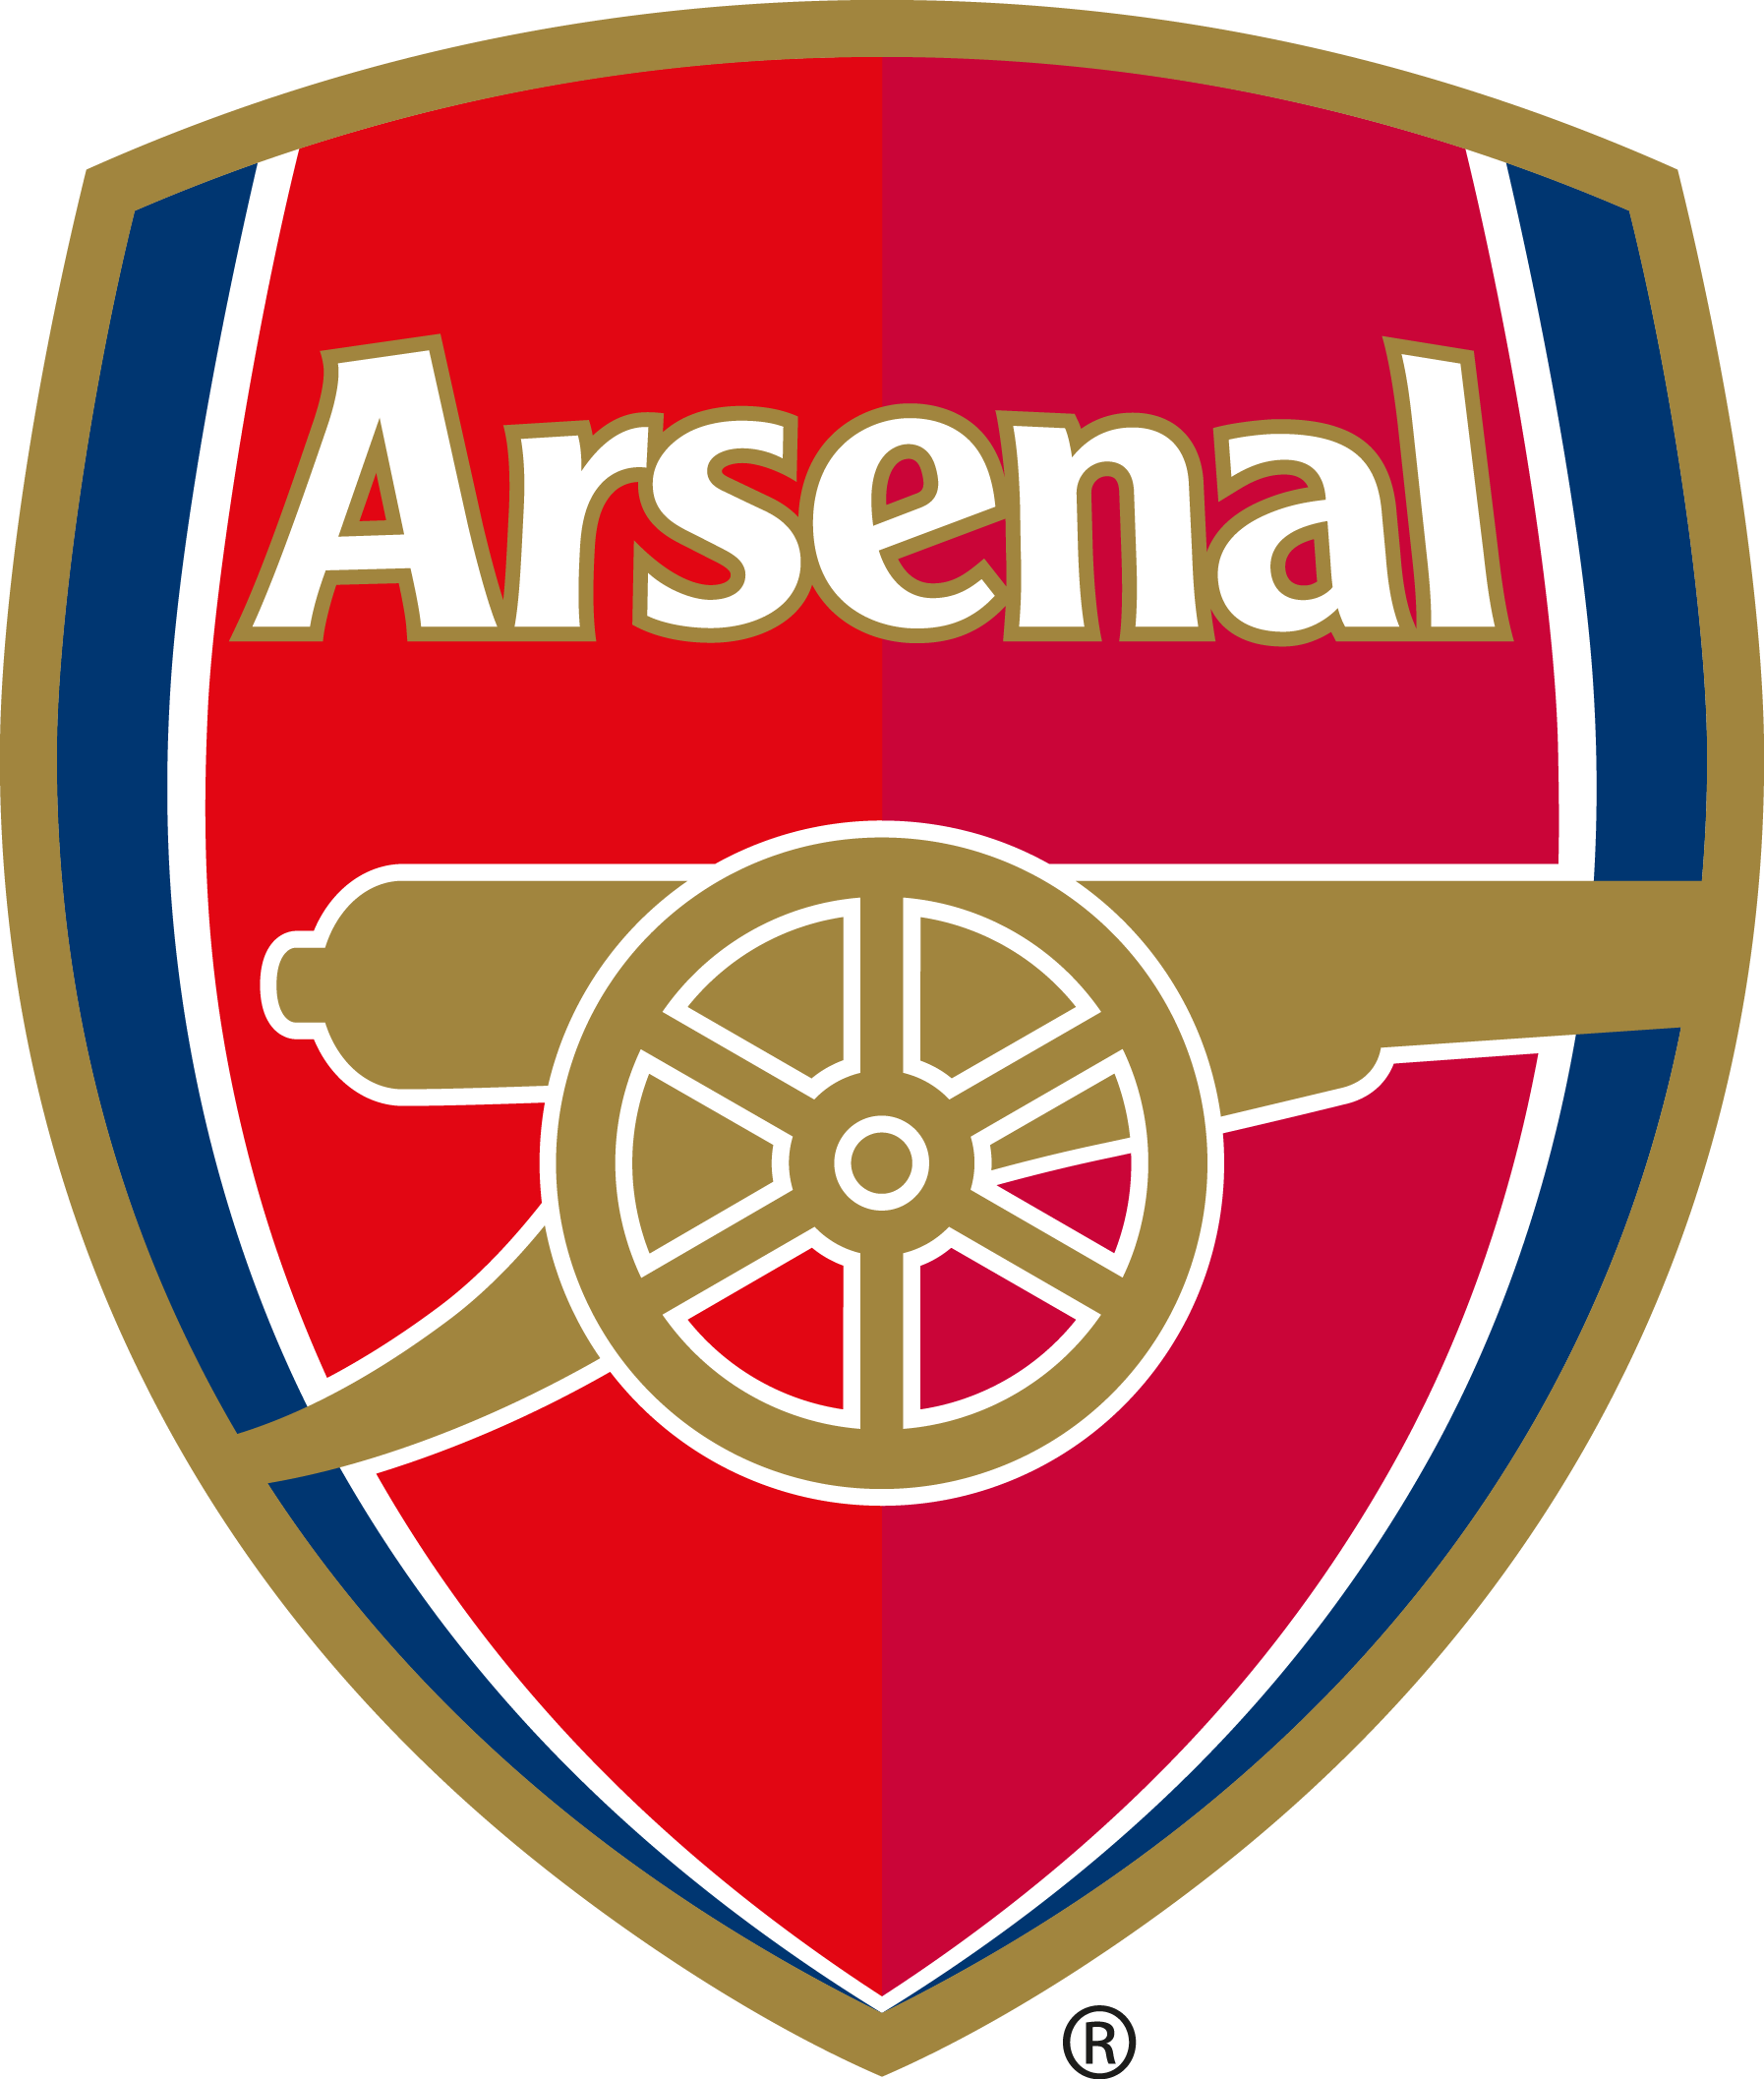 Official Betting Partner of Arsenal Football Club